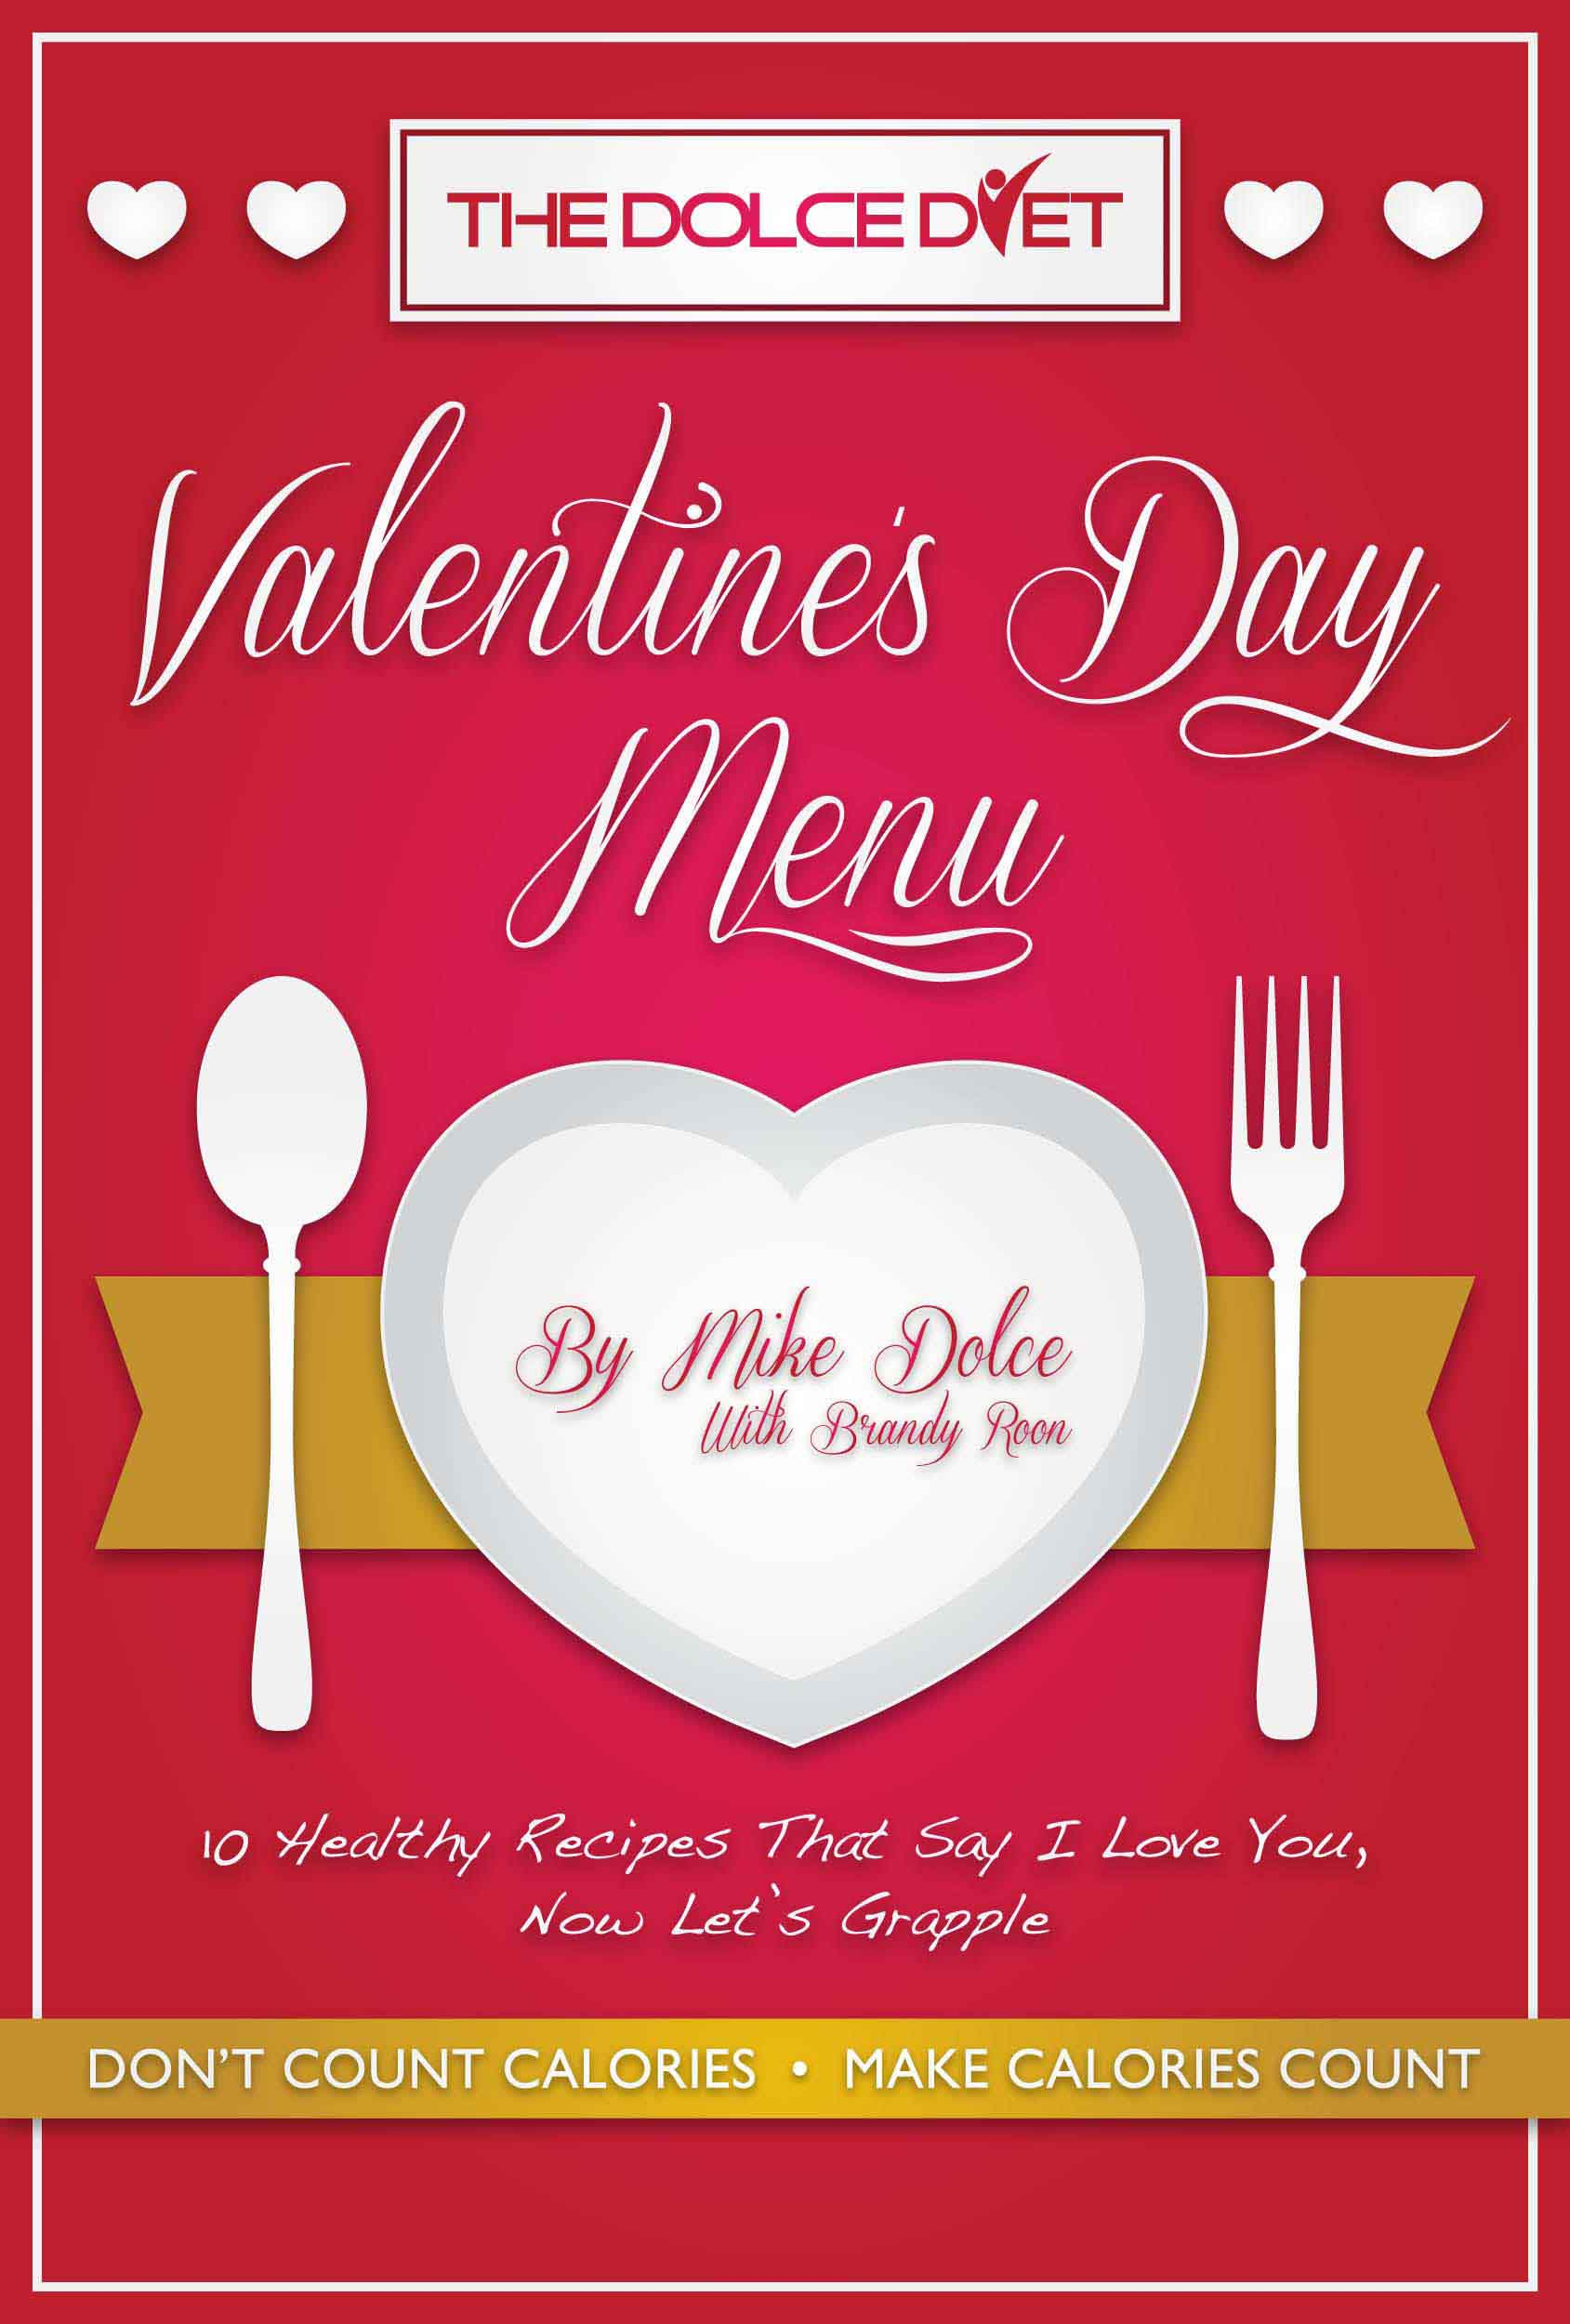 FREE ON KINDLE: THE DOLCE DIET VALENTINE'S DAY MENU! | The Dolce Diet